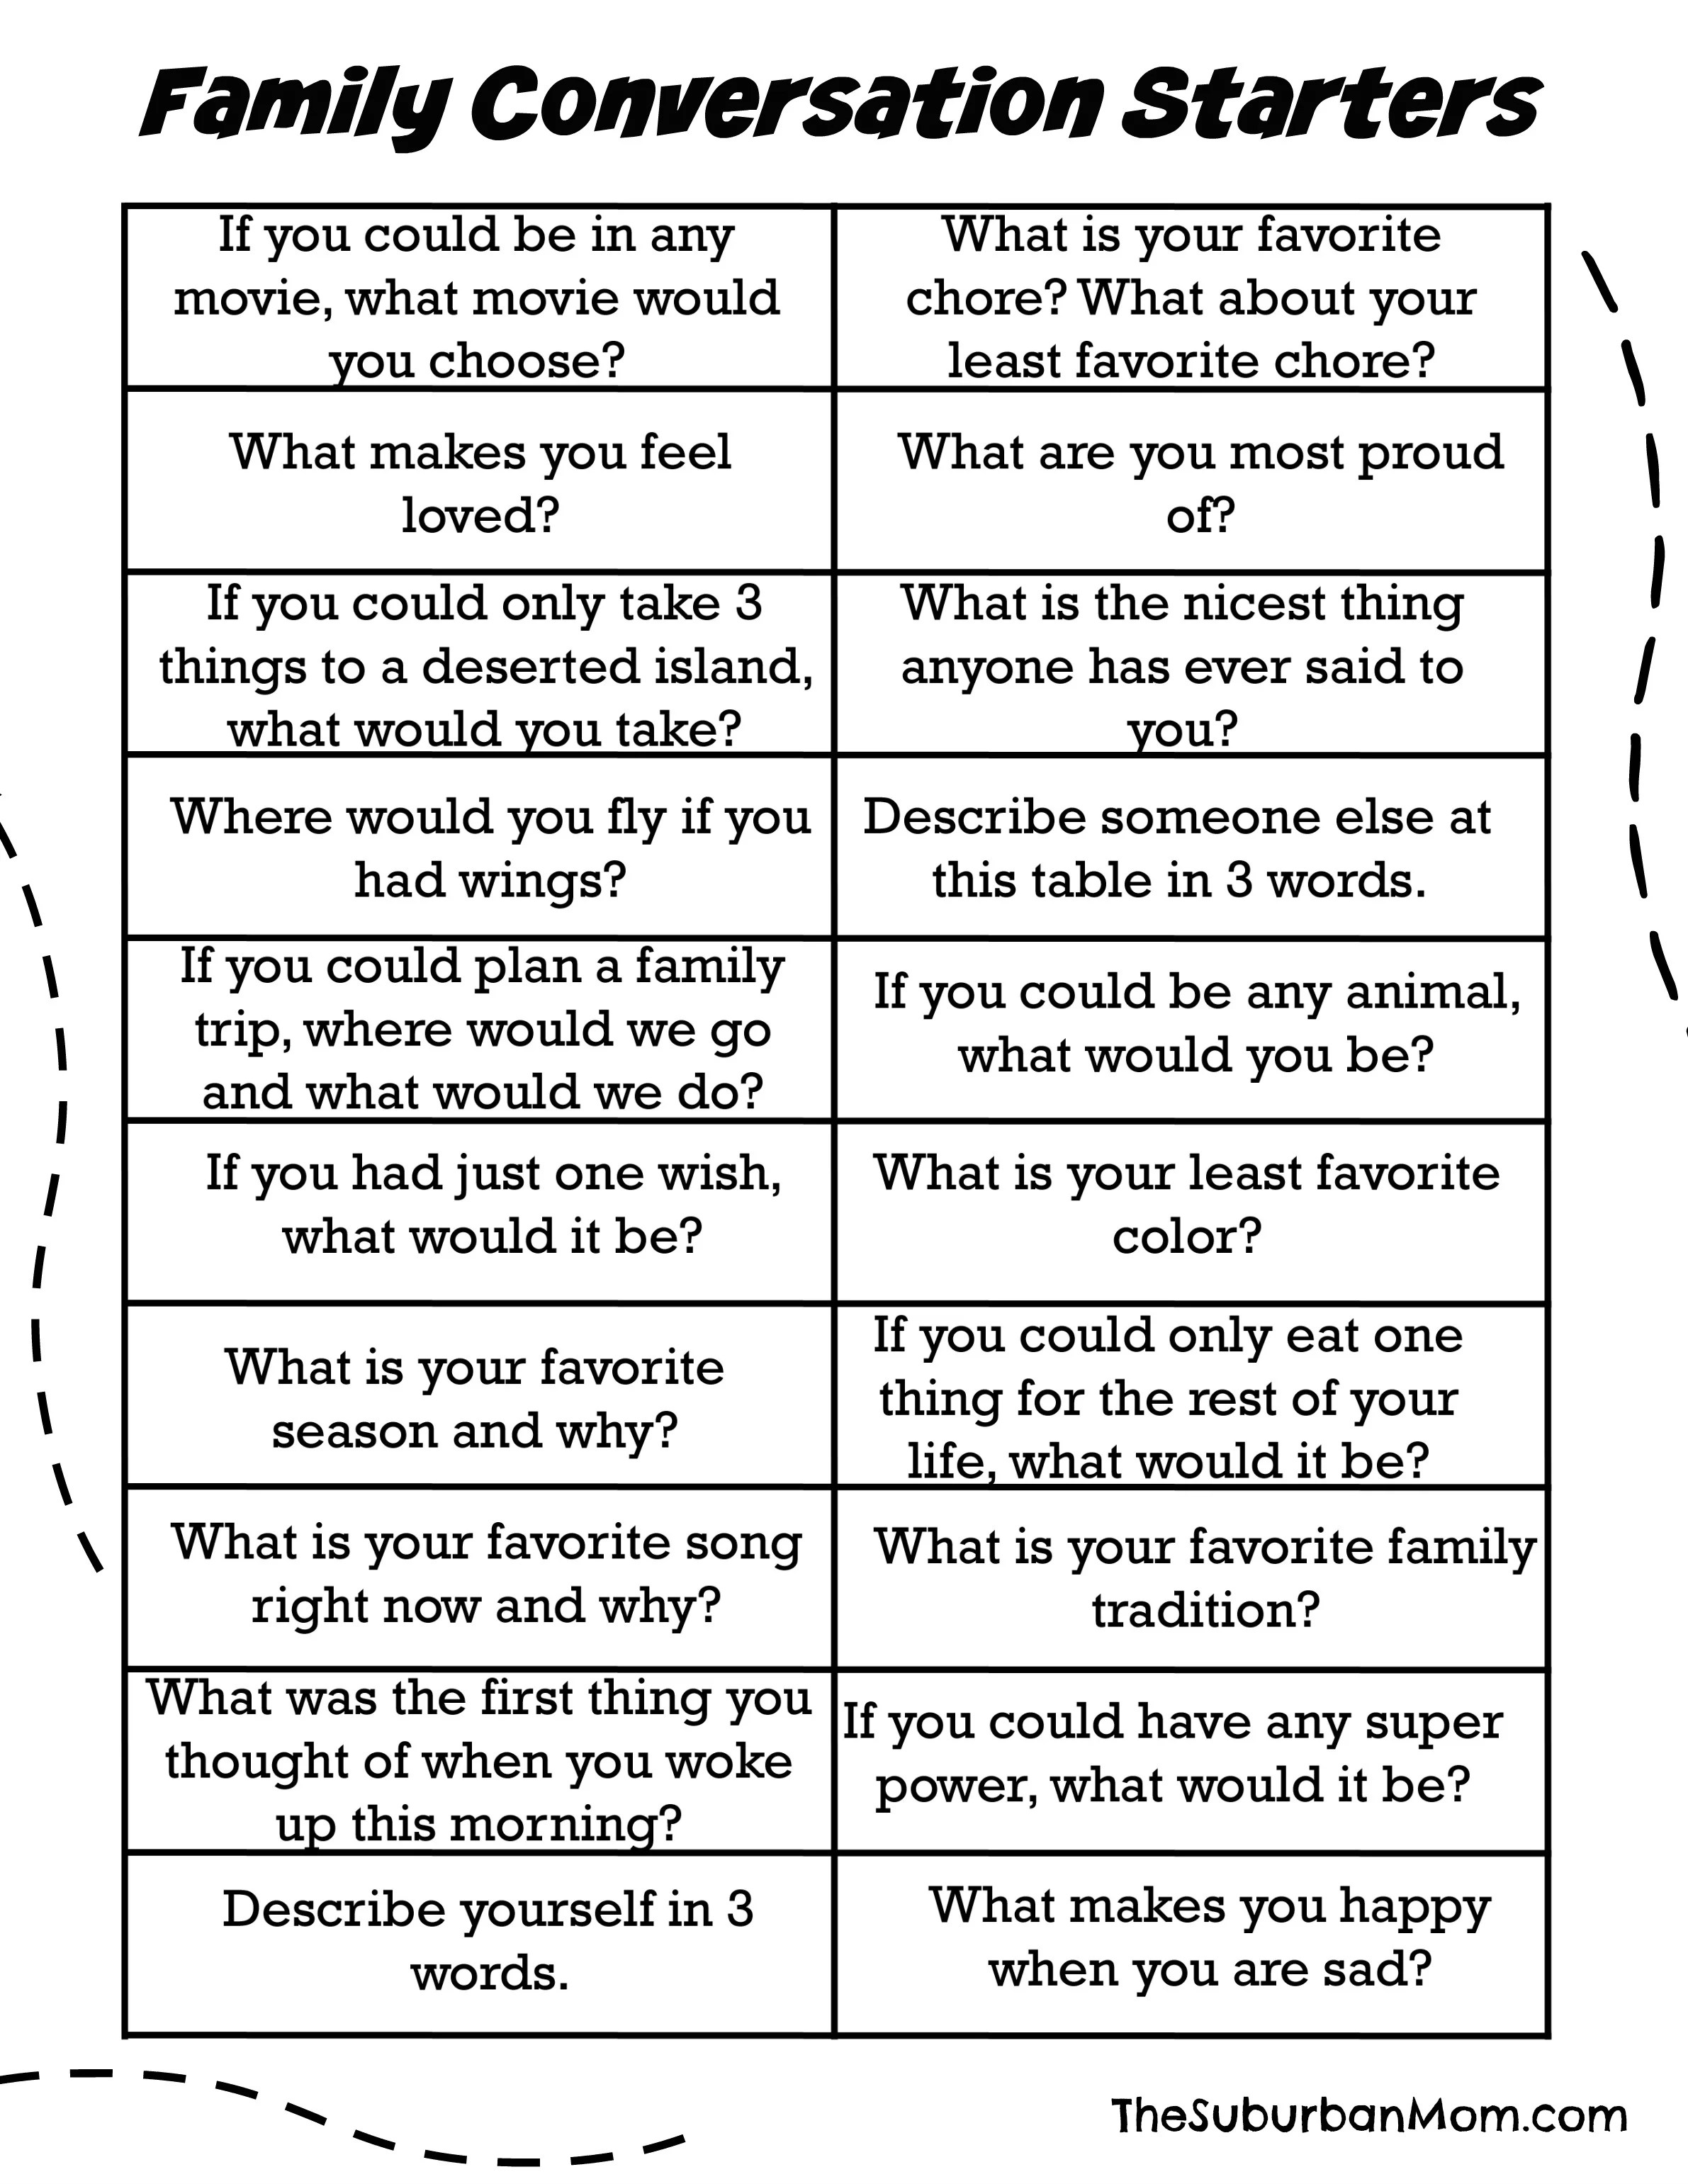 60 Family Conversation Starters Free Printable